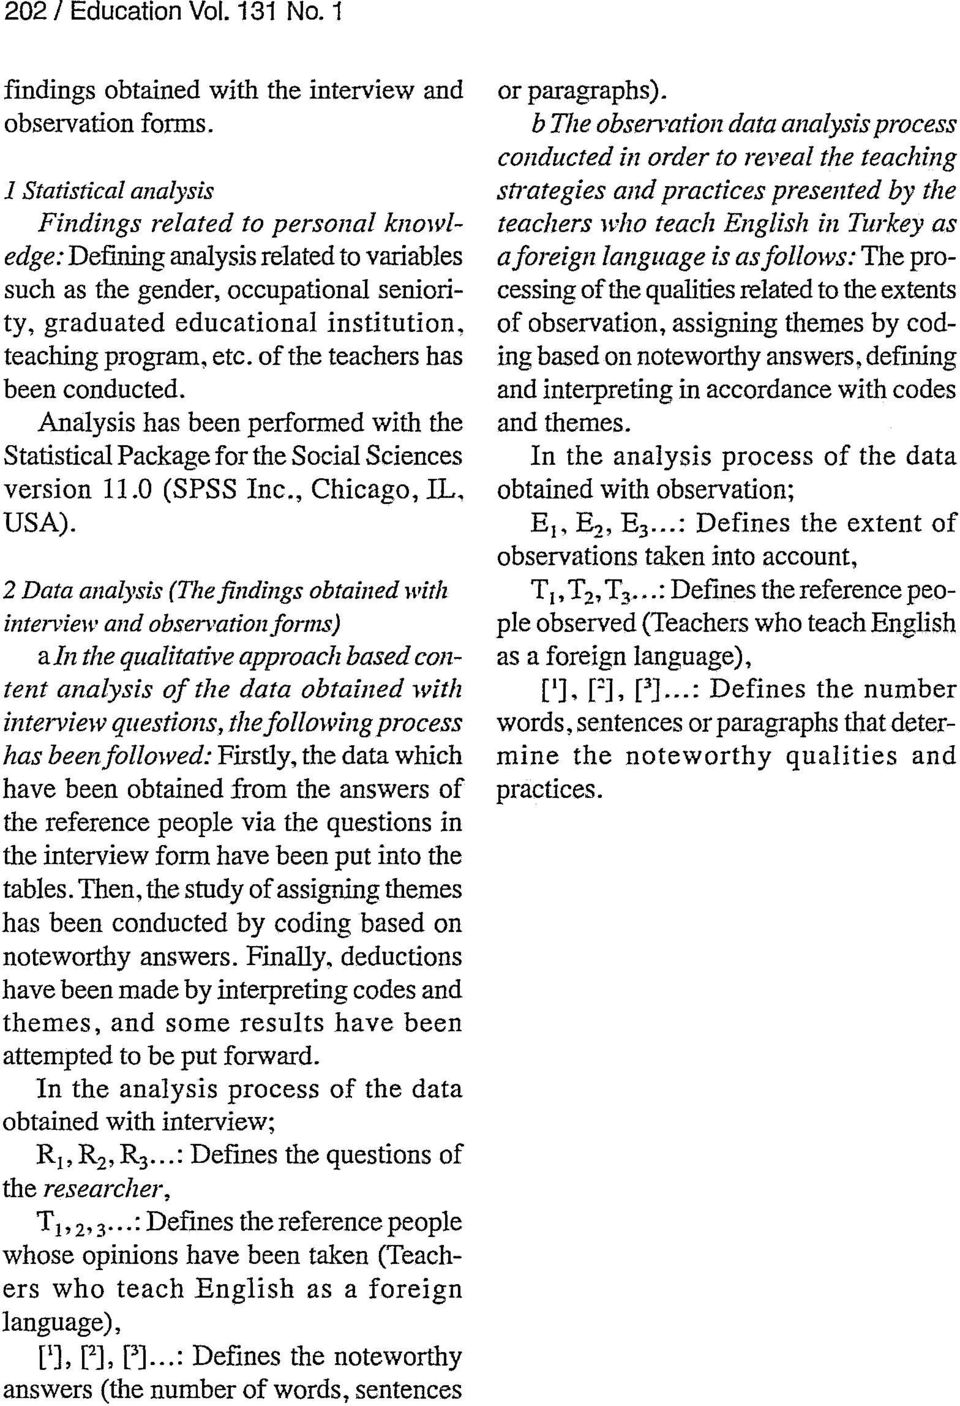 etc. of the teachers has been conducted. Analysis has been performed with the Statistical Package for the Social Sciences version 11.0 (SPSS Inc., Chicago, IL. USA).